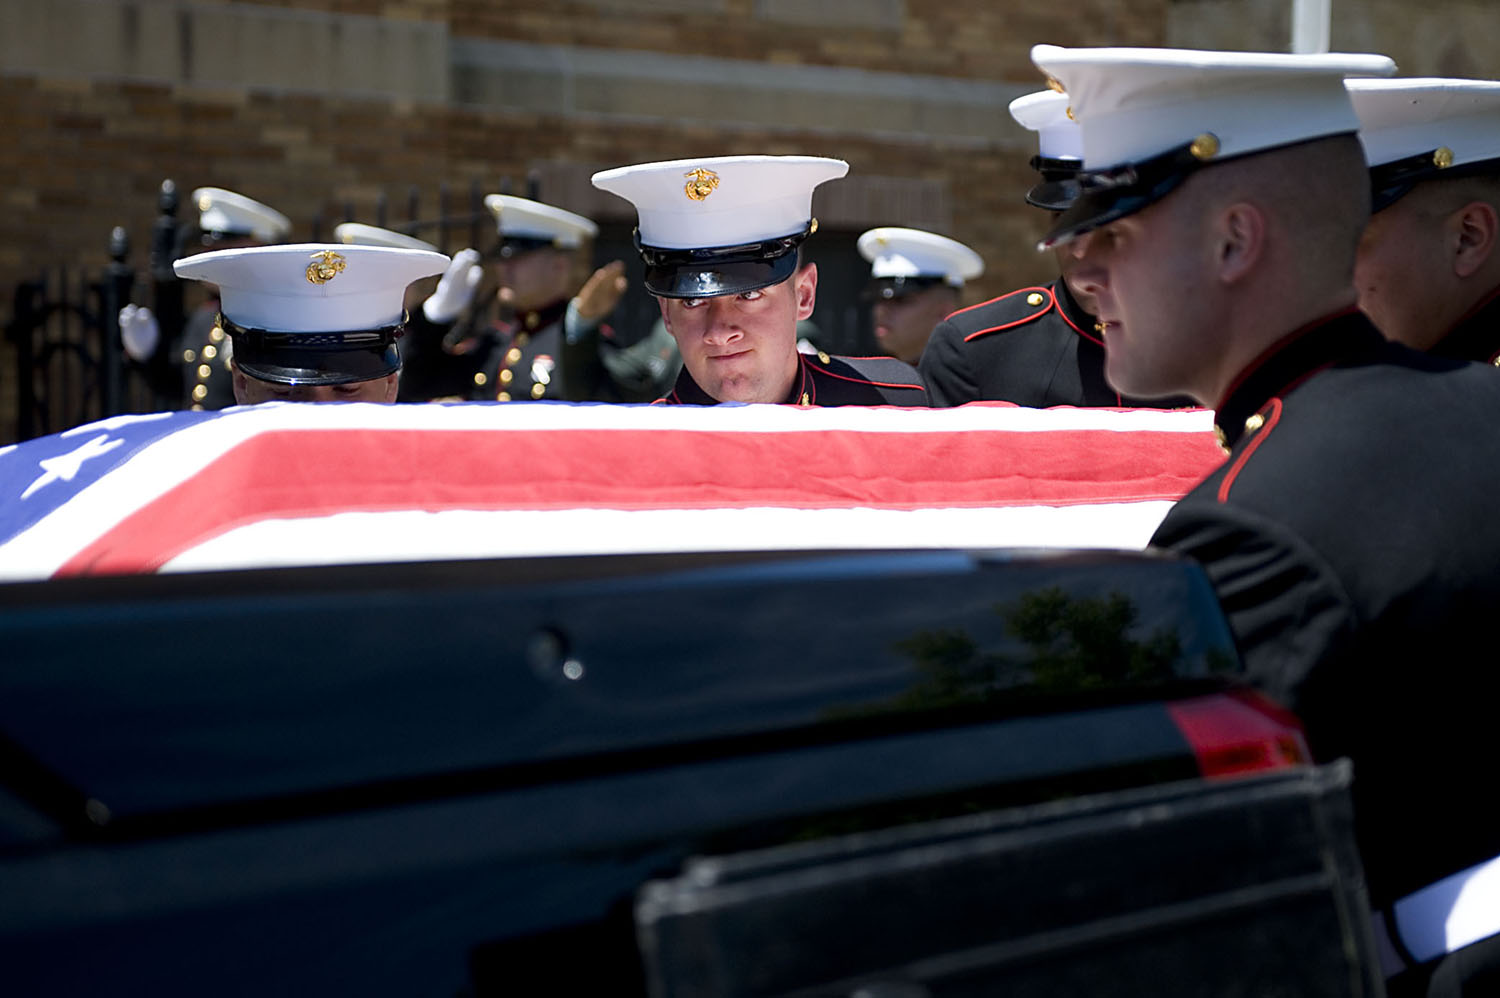 Funeral service for slain U.S. Marine Anthony Chenay Adams, 23, of Jersey City, at Monumental Baptist Church. Here, U.S. Marines place Anthony C. Adams' flag-draped casket on a pickup truck hearse after the funeral service. Police say Adams was the victim of a carjacking. Early on May 26, he was in his 2002 Ford Explorer on Bidwell Avenue when he was shot once in the chest and left ear, officials said. Earl Austin, 20, of Bartholdi Avenue, has been charged. (Reena Rose Sibayan | The Jersey Journal)